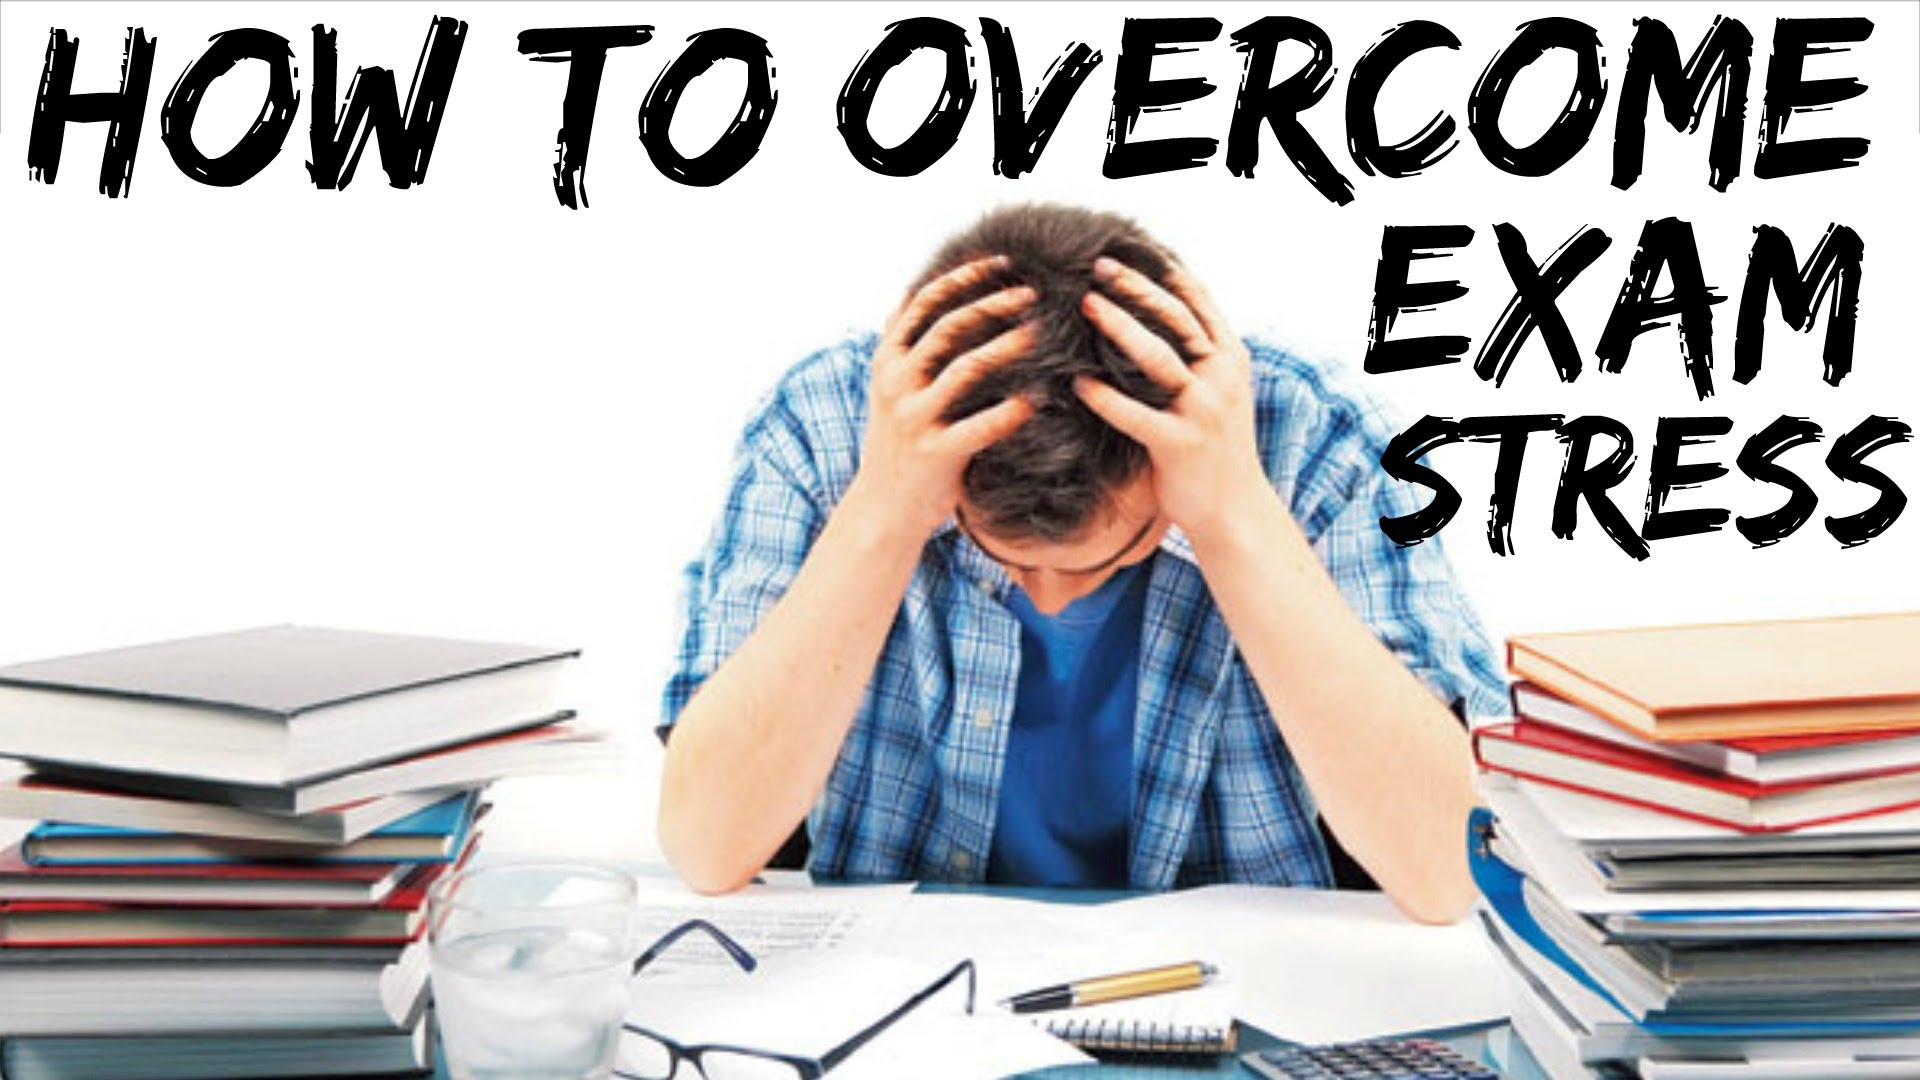 stress for exams Stress symptoms, signs, and causes improving your ability to handle stress  stress isn't always bad in small doses, it can help you perform under pressure and motivate you to do your best.